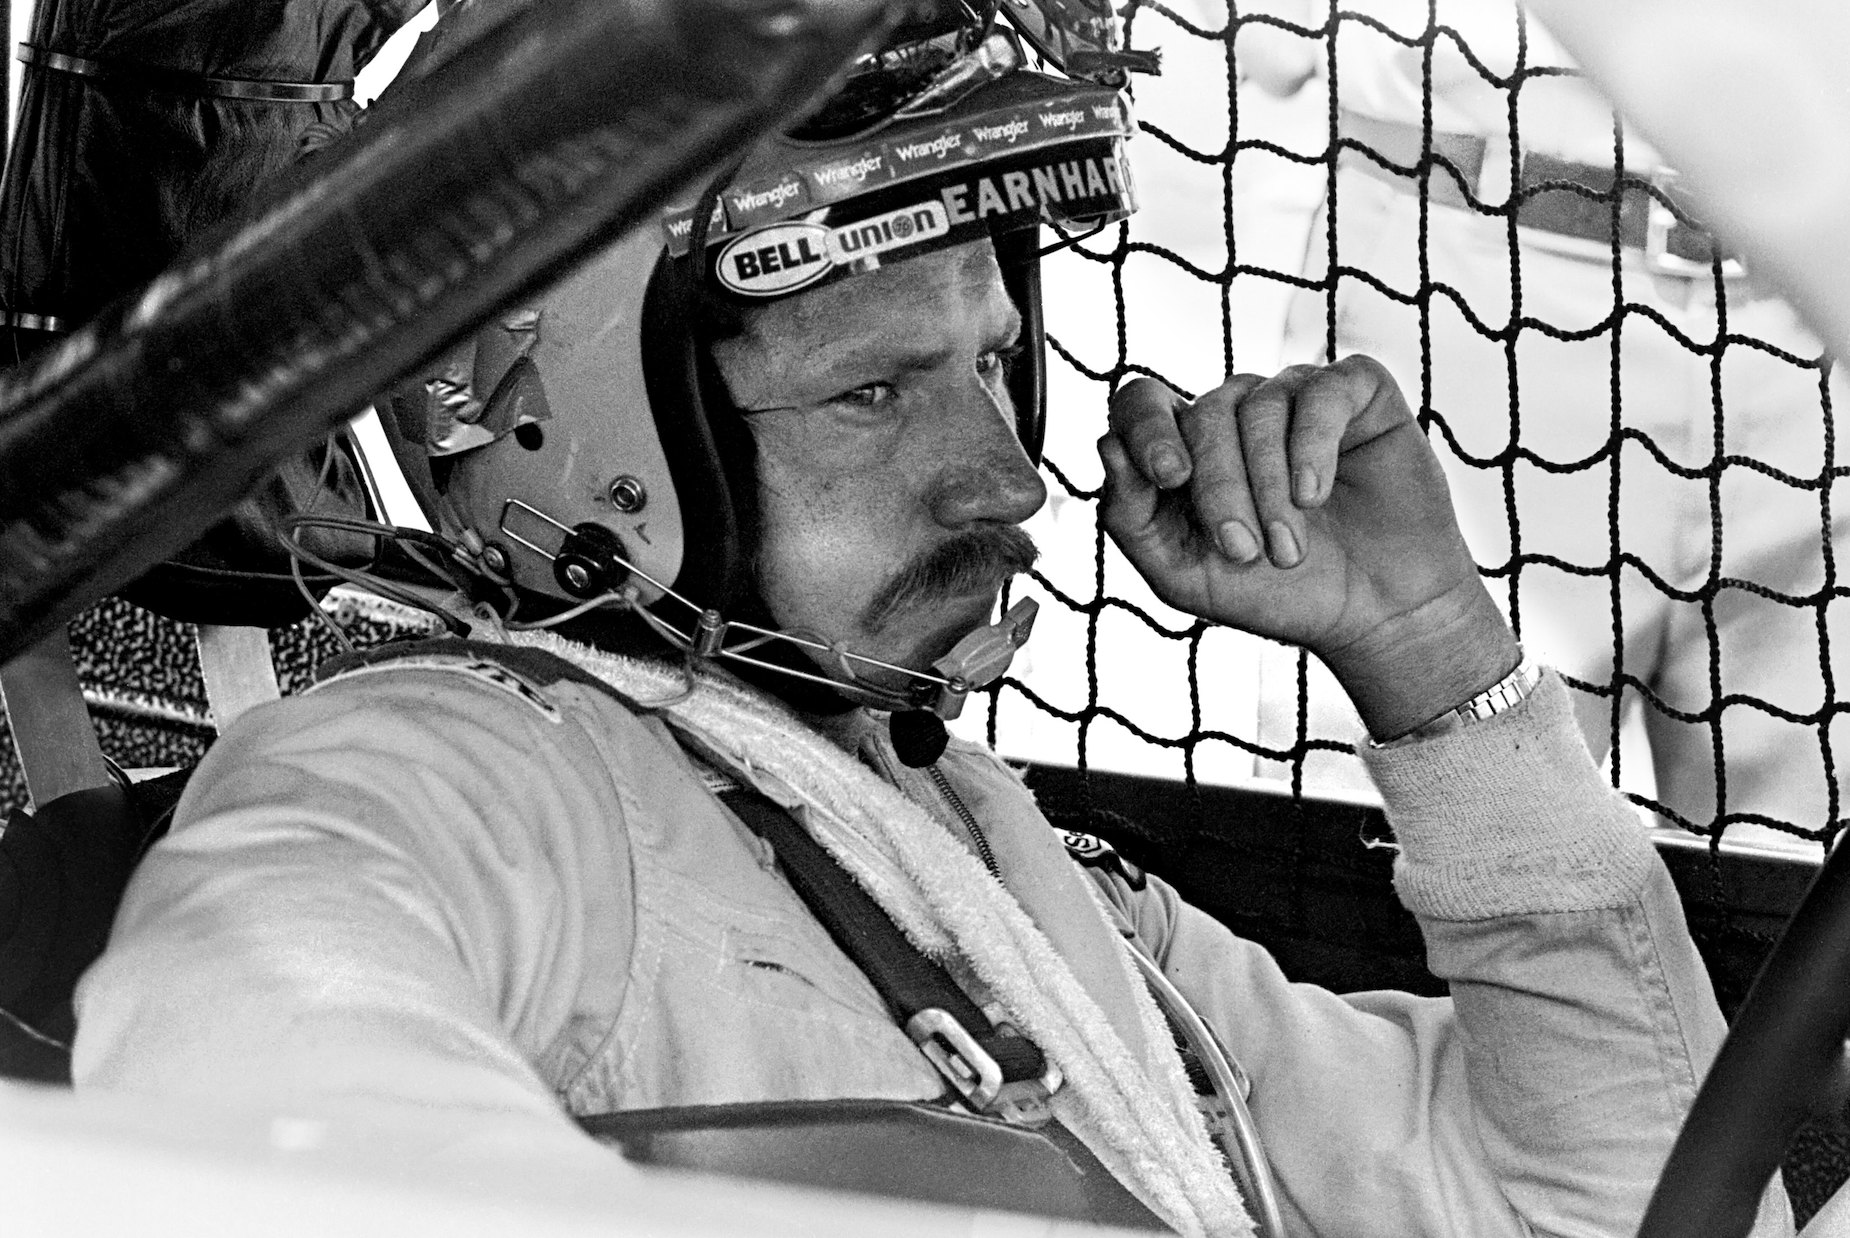 NASCAR driver Dale Earnhardt sits in his car ahead of the 1981 Firecracker 400.